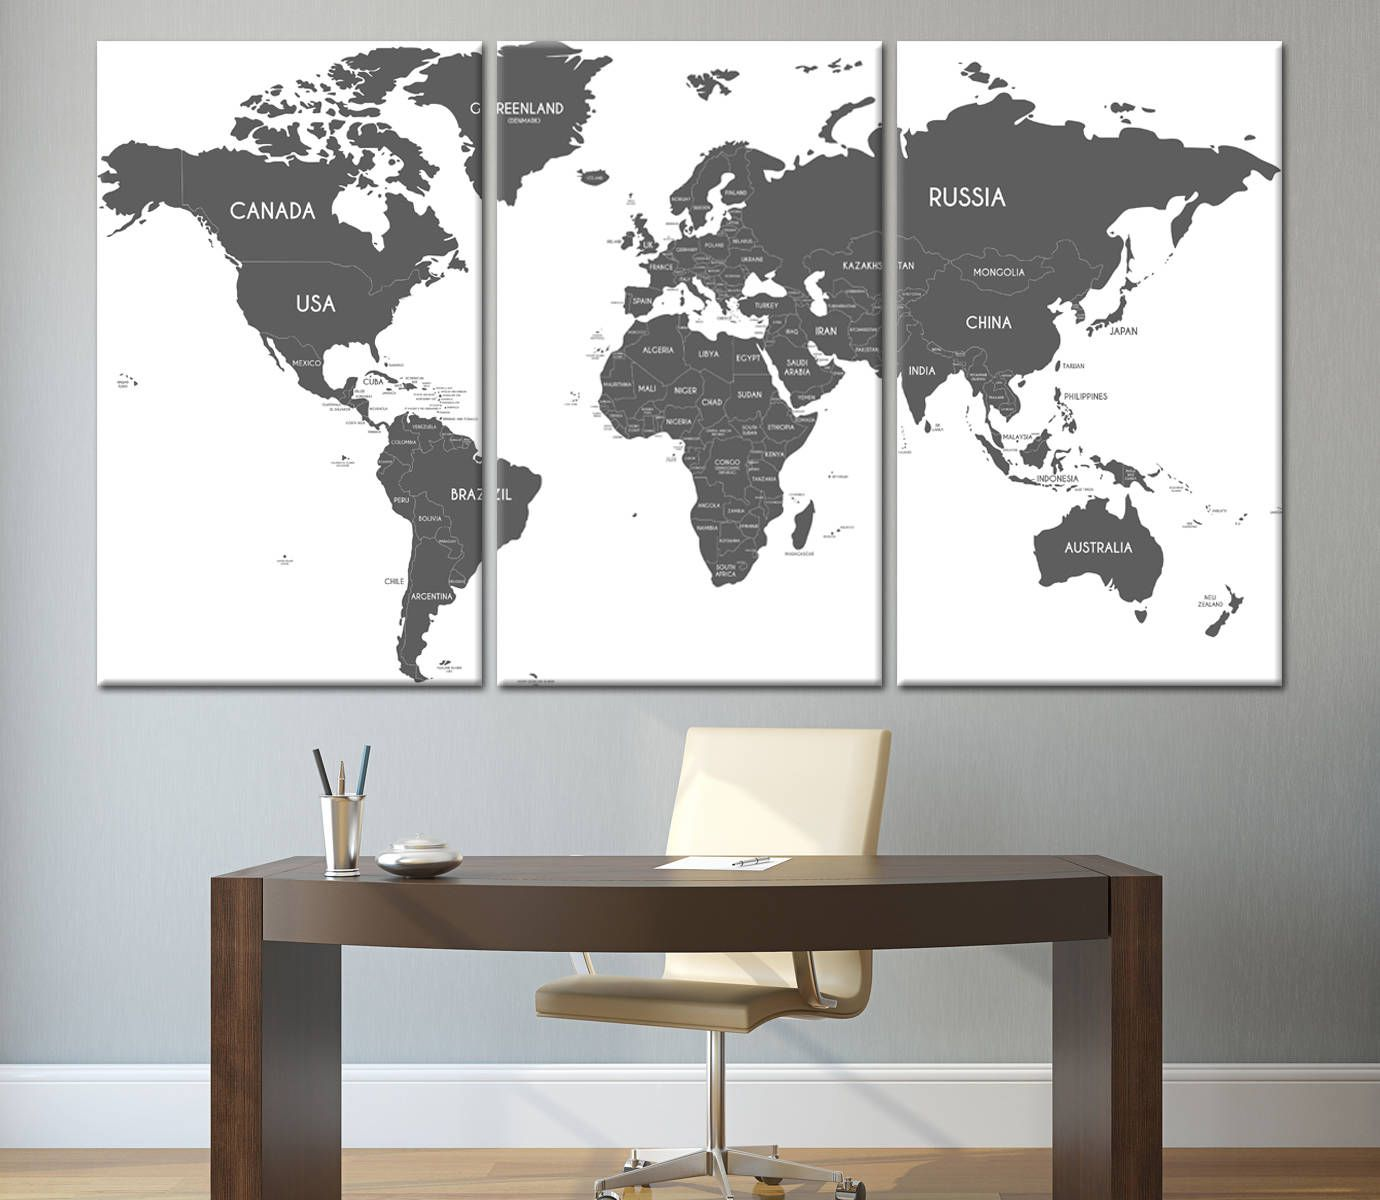 Large grey and white world map wall art with countries names canvas large grey and white world map wall art with countries names canvas print large home or office decor political world map canvas print set gumiabroncs Gallery